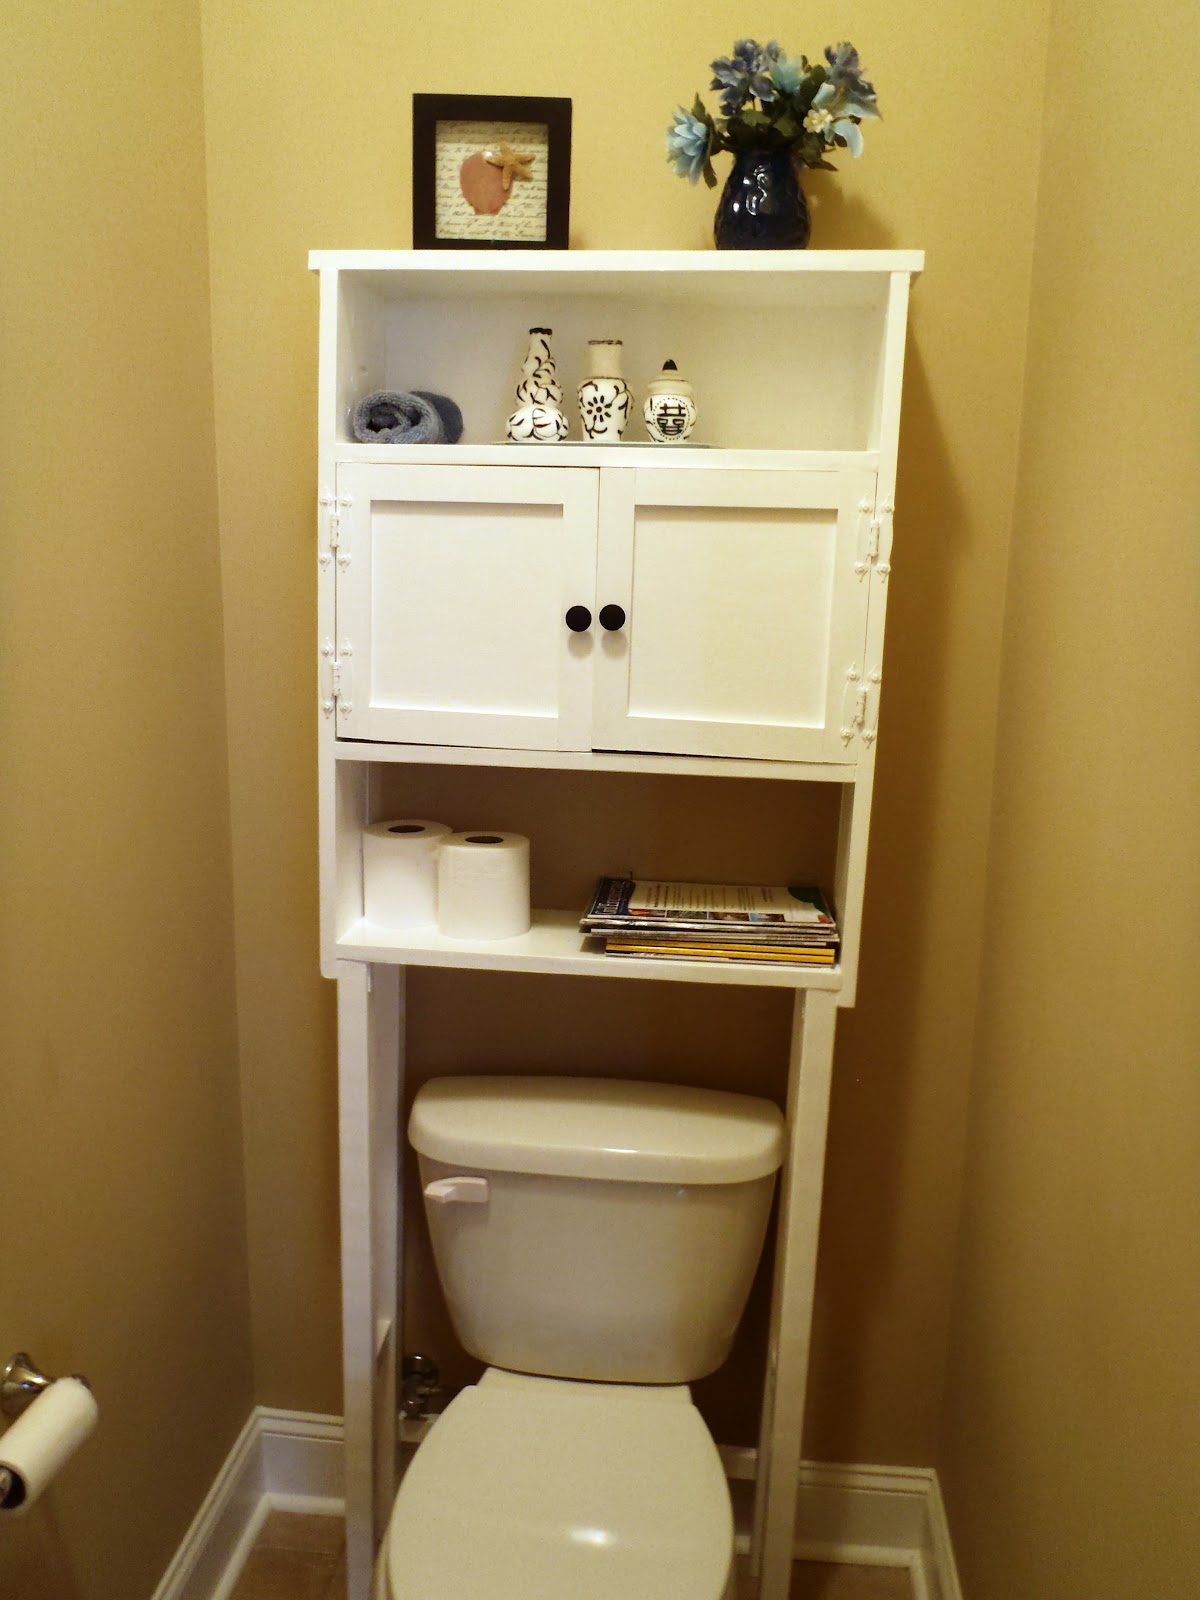 Lazy liz on less space saver for bathroom for Bathroom shelving ideas for small spaces